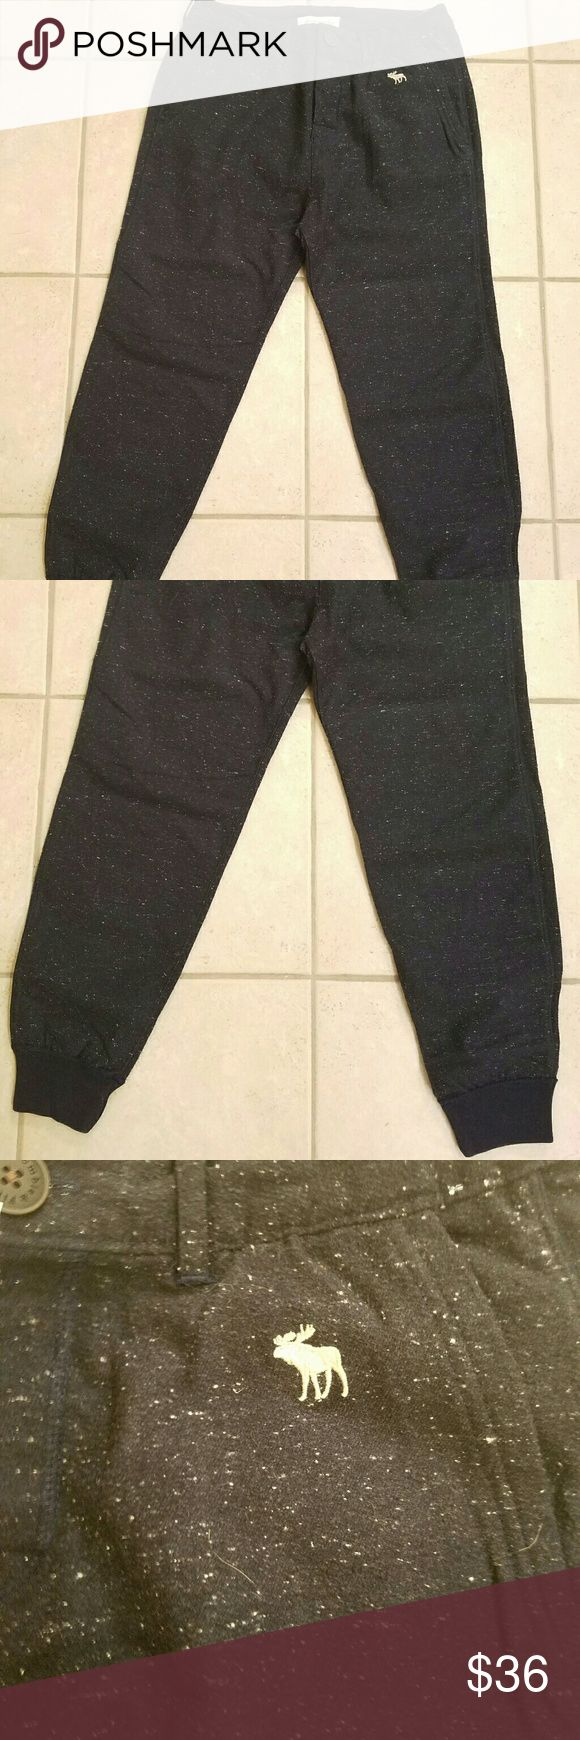 Mens Abercrombie Jogger style pants NWT Mens Jogger style pants- Dark Blue with white specs- These are not sweatpants or jeans, they are a dressy/casual jogger style pant. Abercrombie & Fitch Pants Sweatpants & Joggers